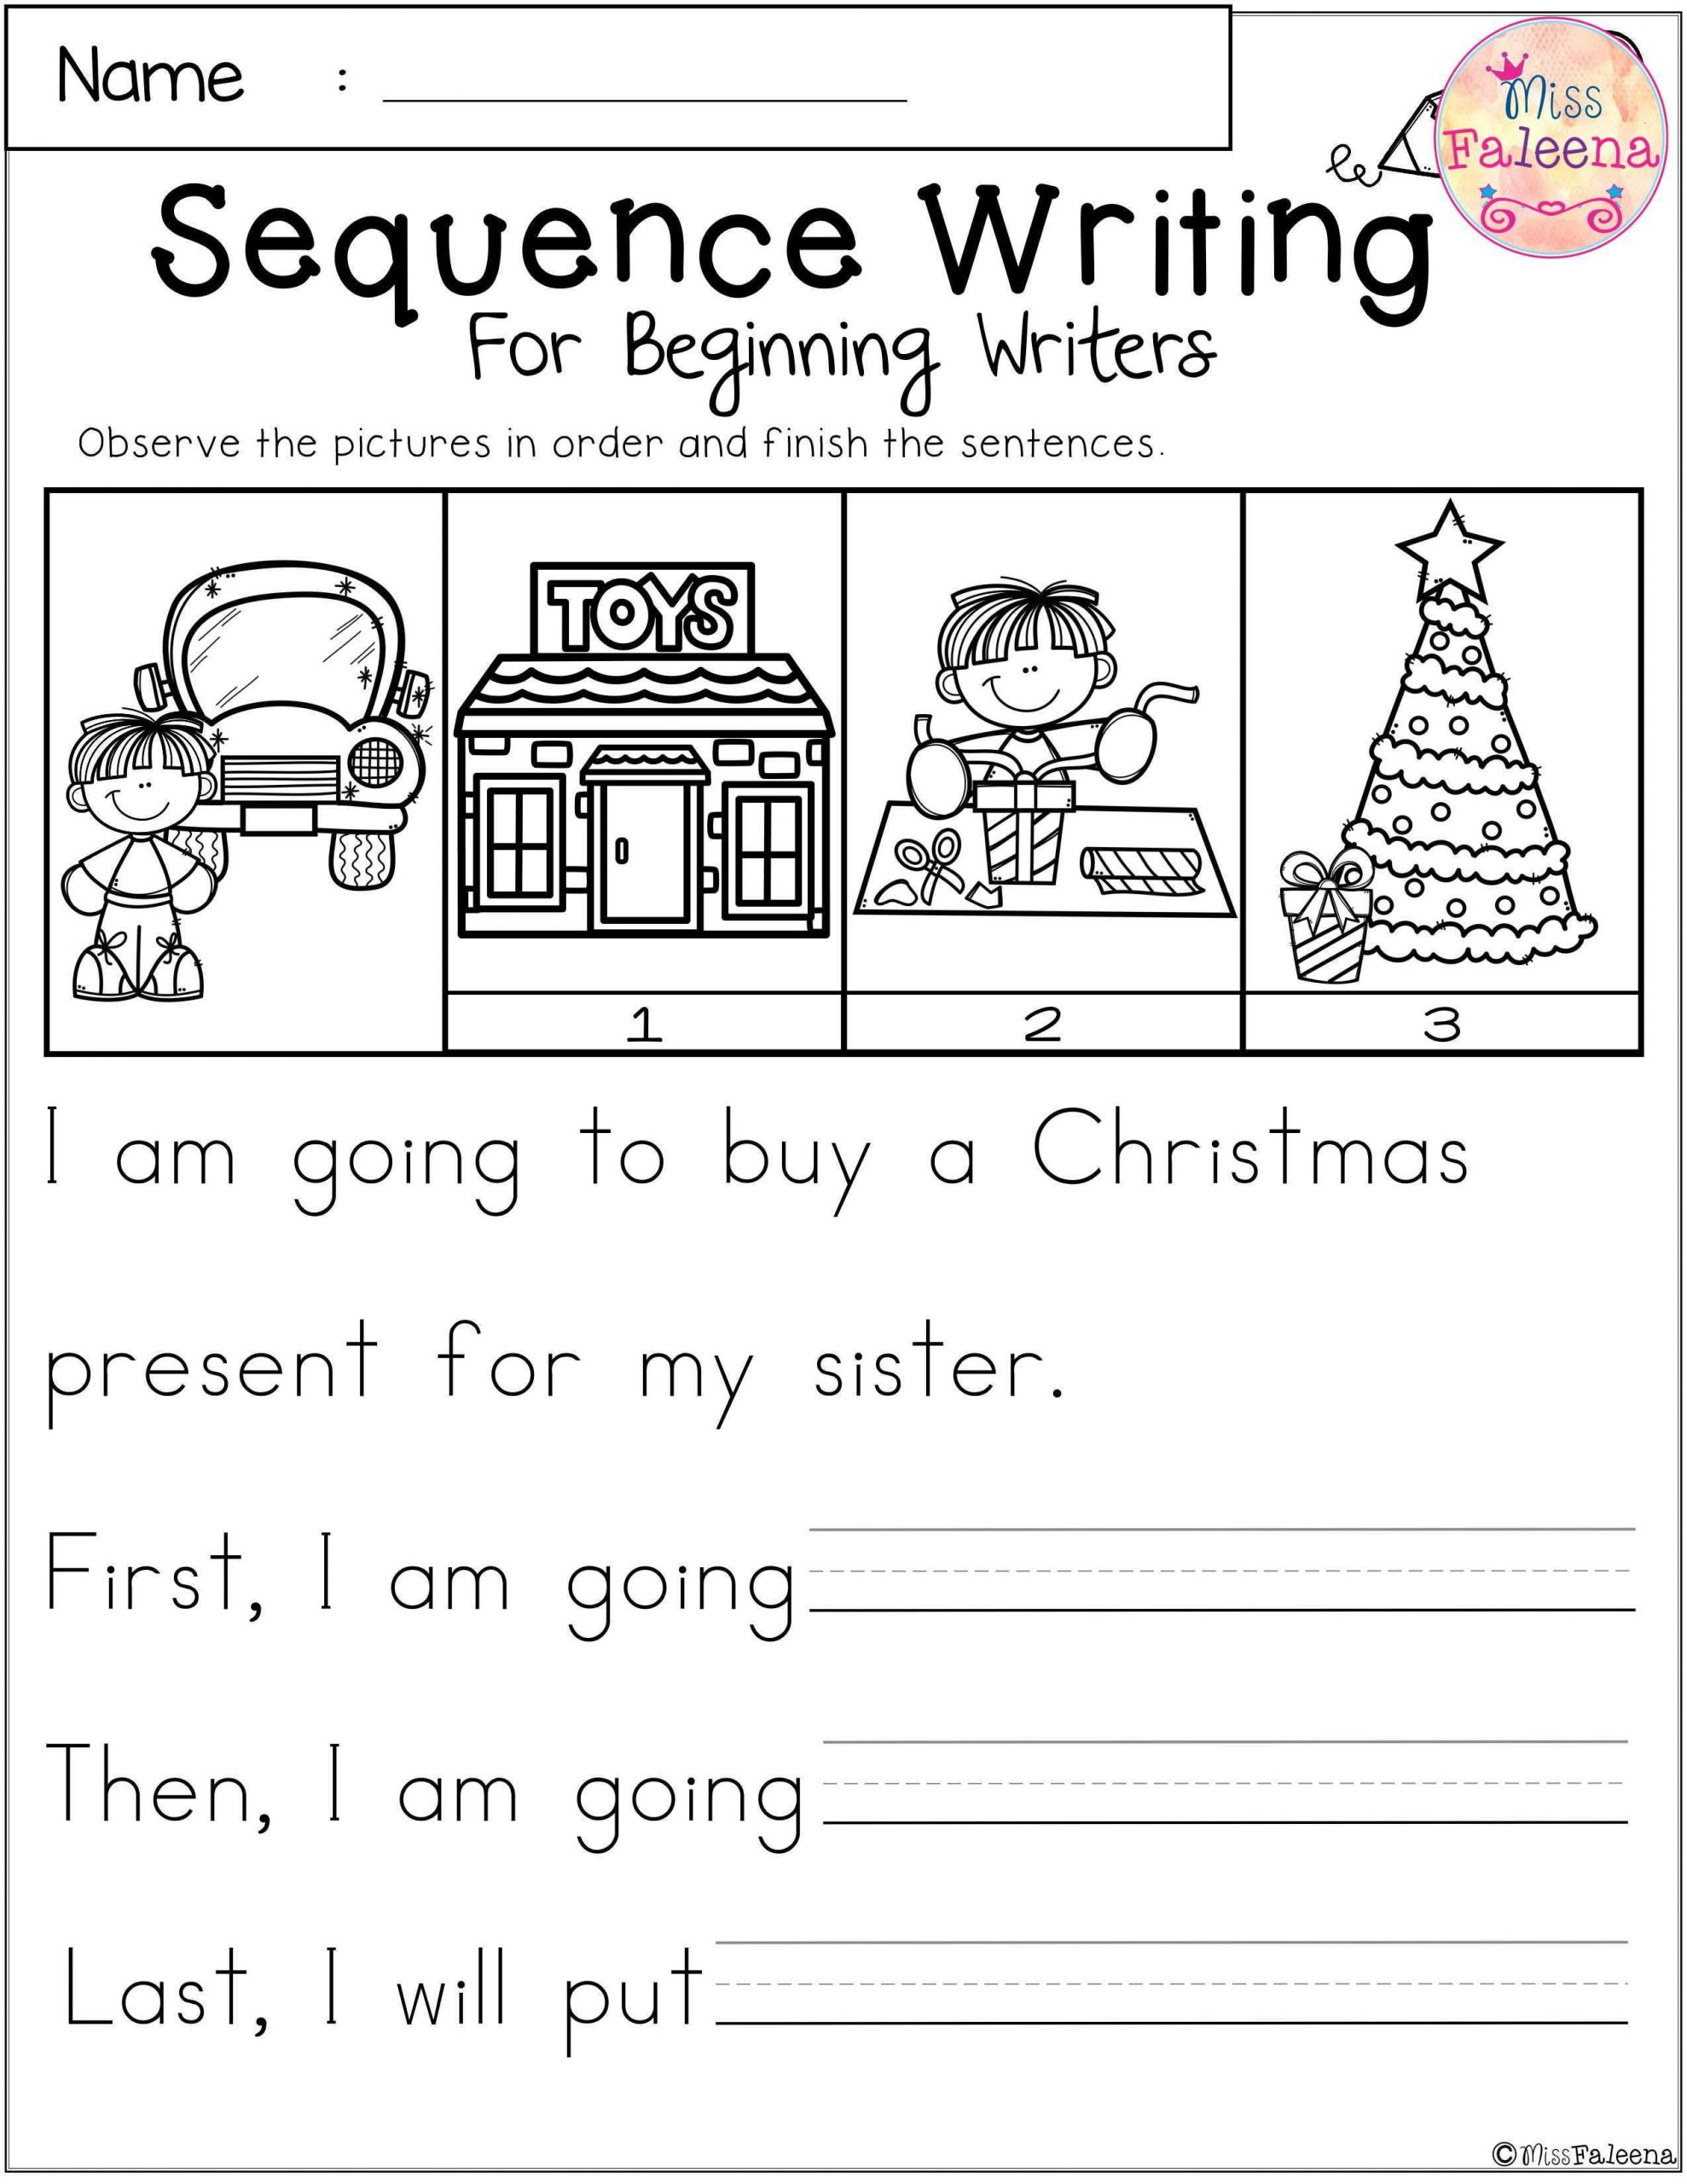 Sequencing Worksheets for 2nd Grade December Sequence Writing for Beginning Writers